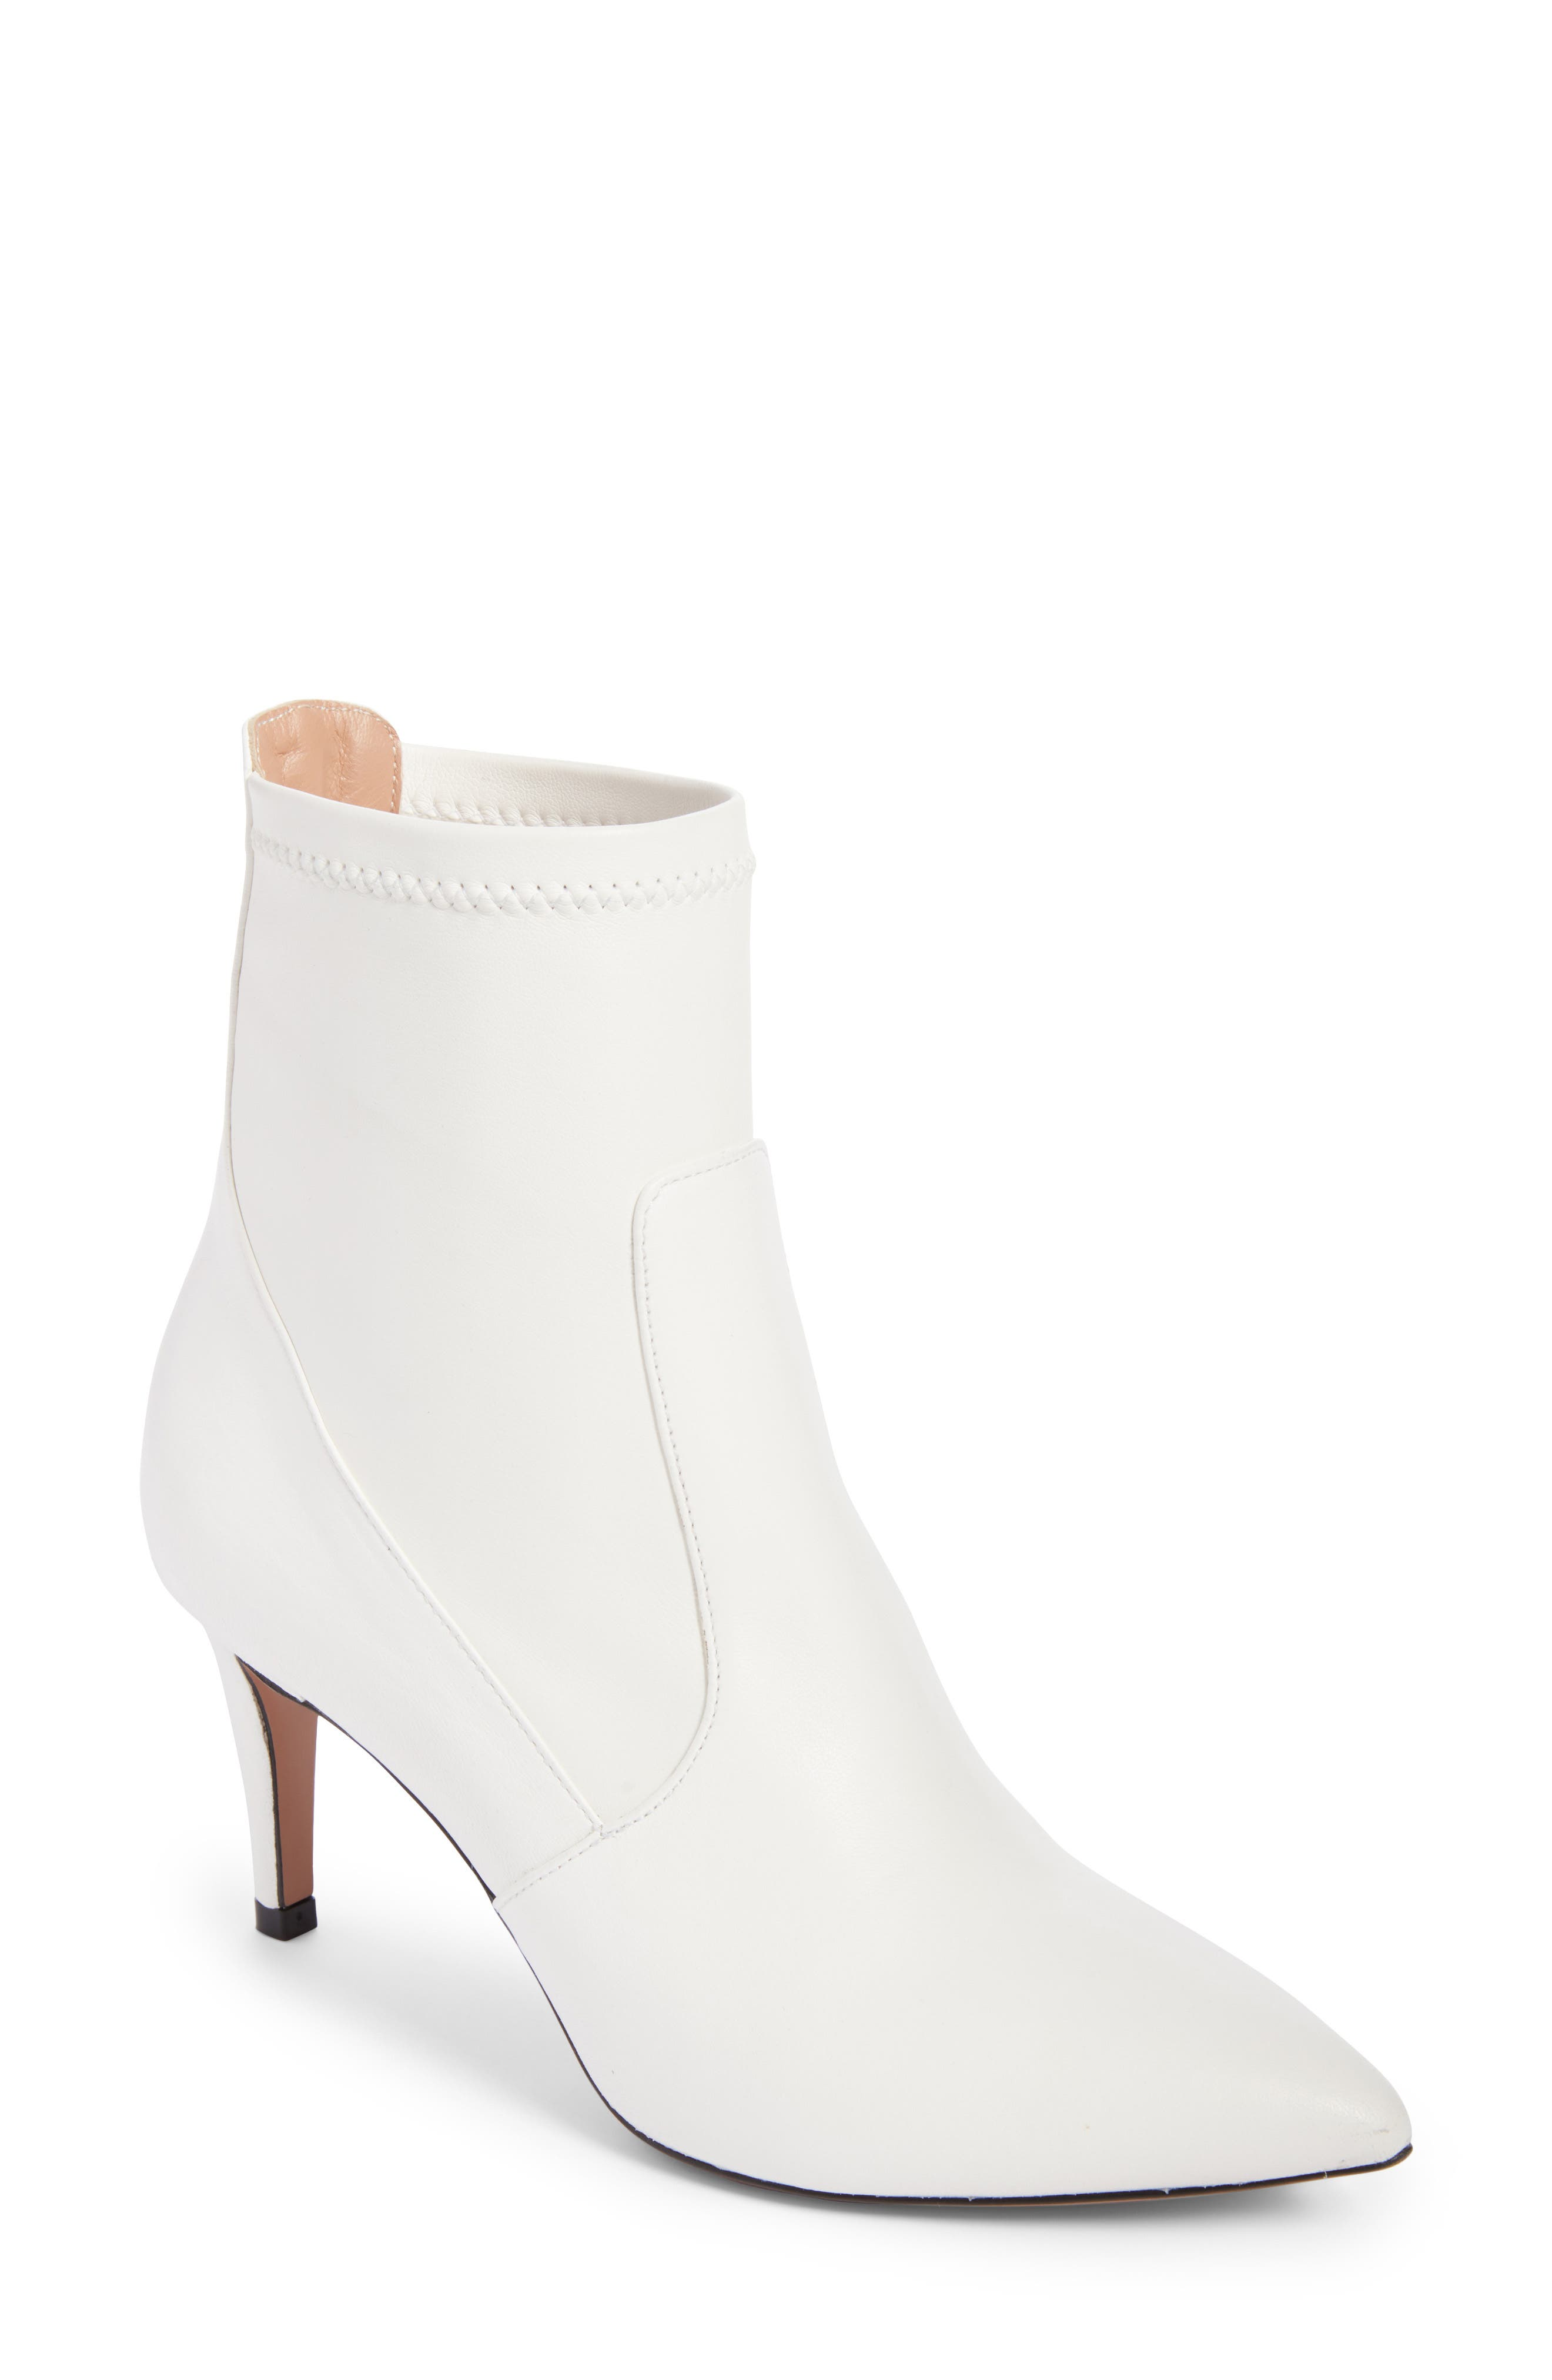 Abra Bootie,                         Main,                         color, White Leather